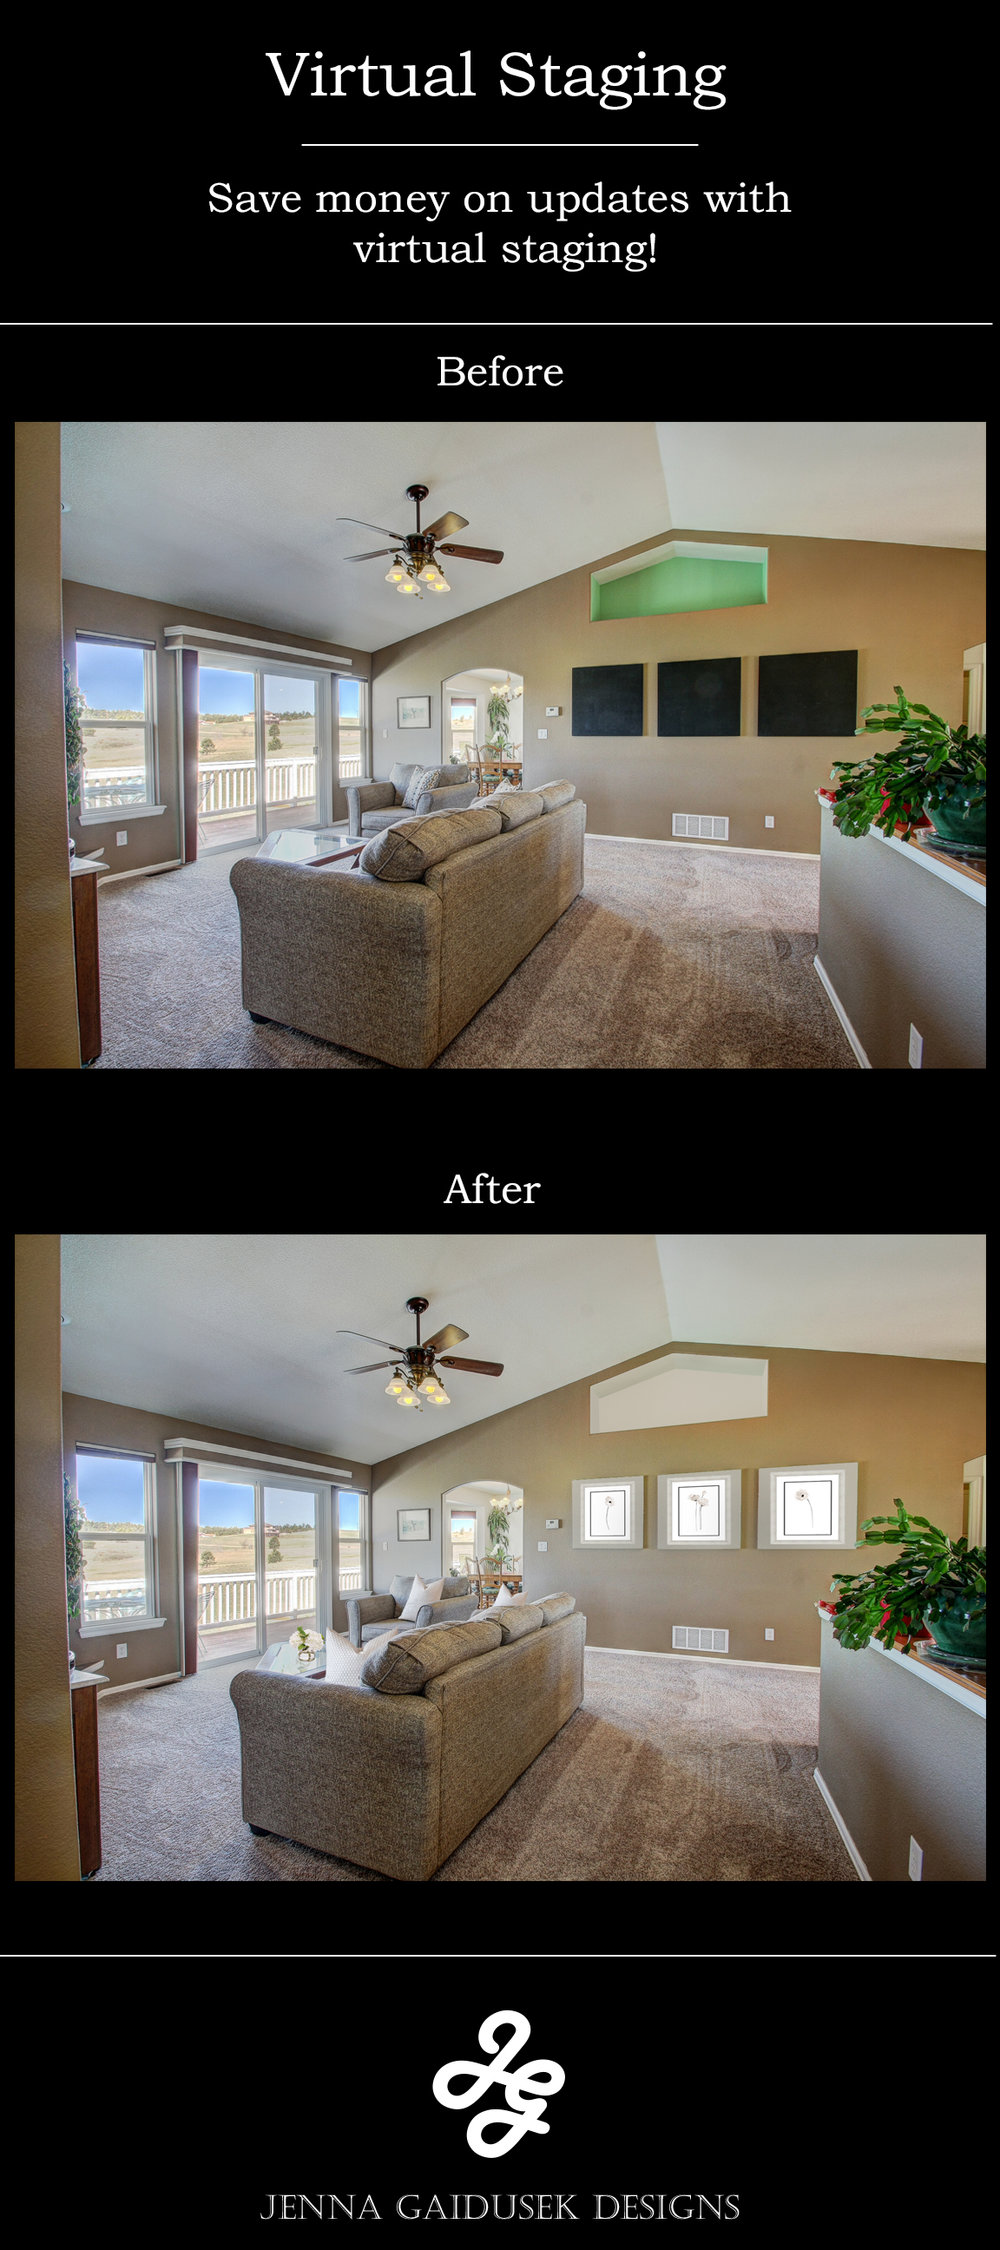 virtual staging by Jenna Gaidusek Designs